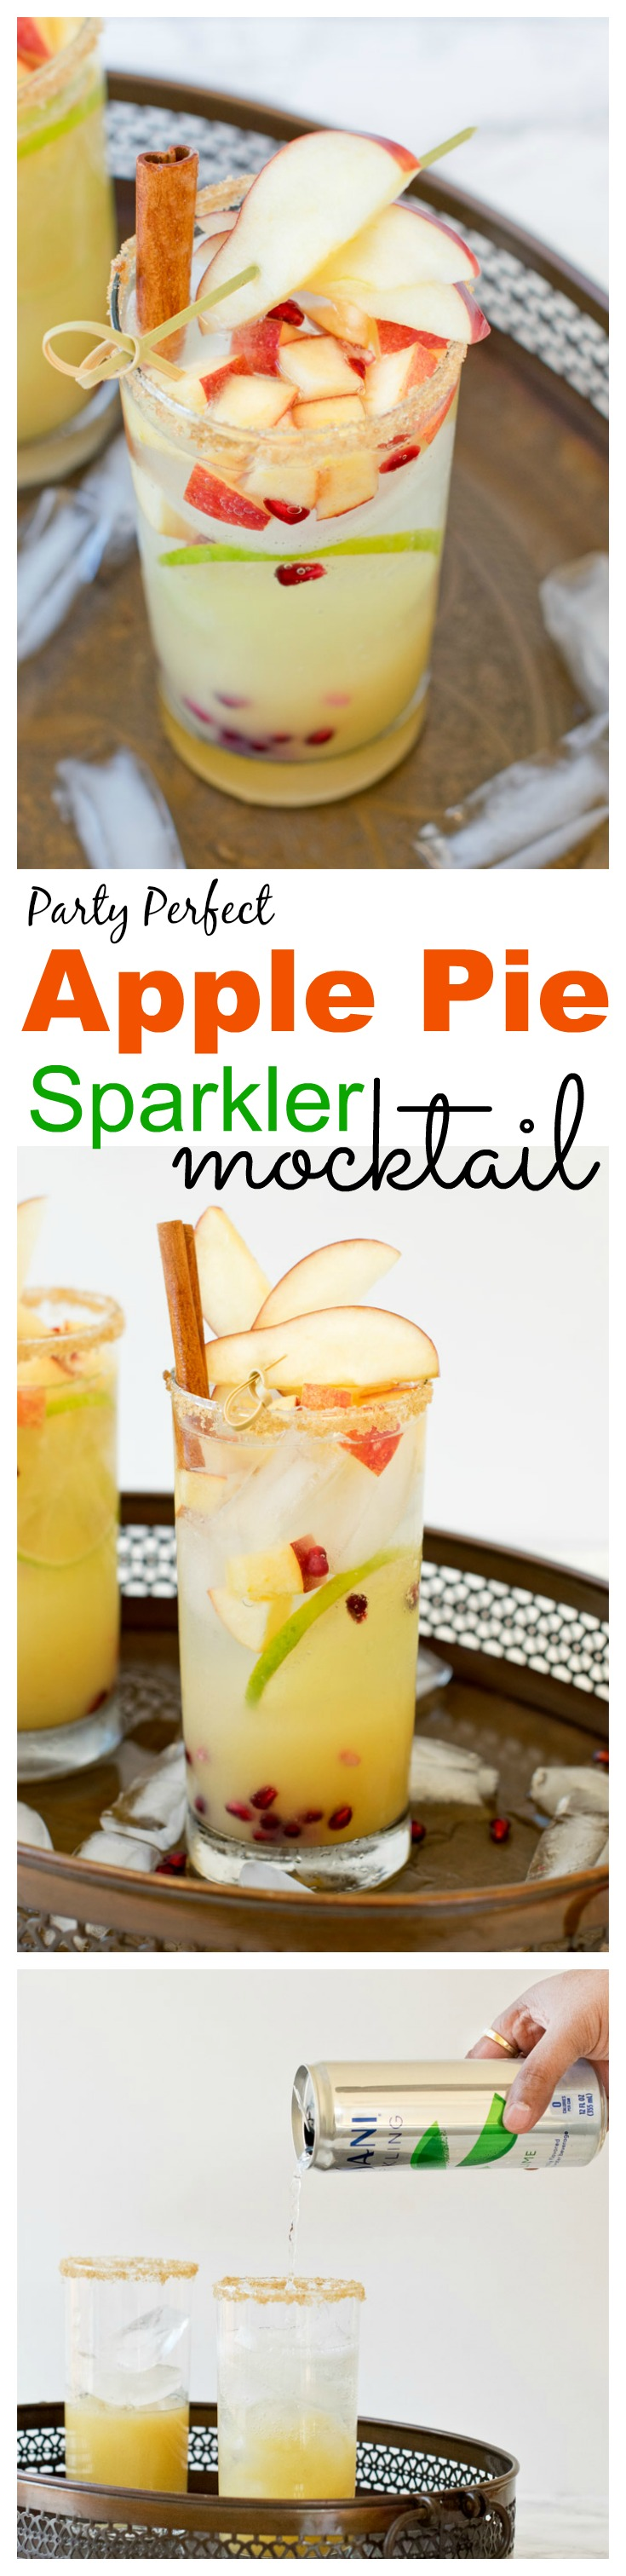 apple-pie-sparkler-non-alcoholic-drink